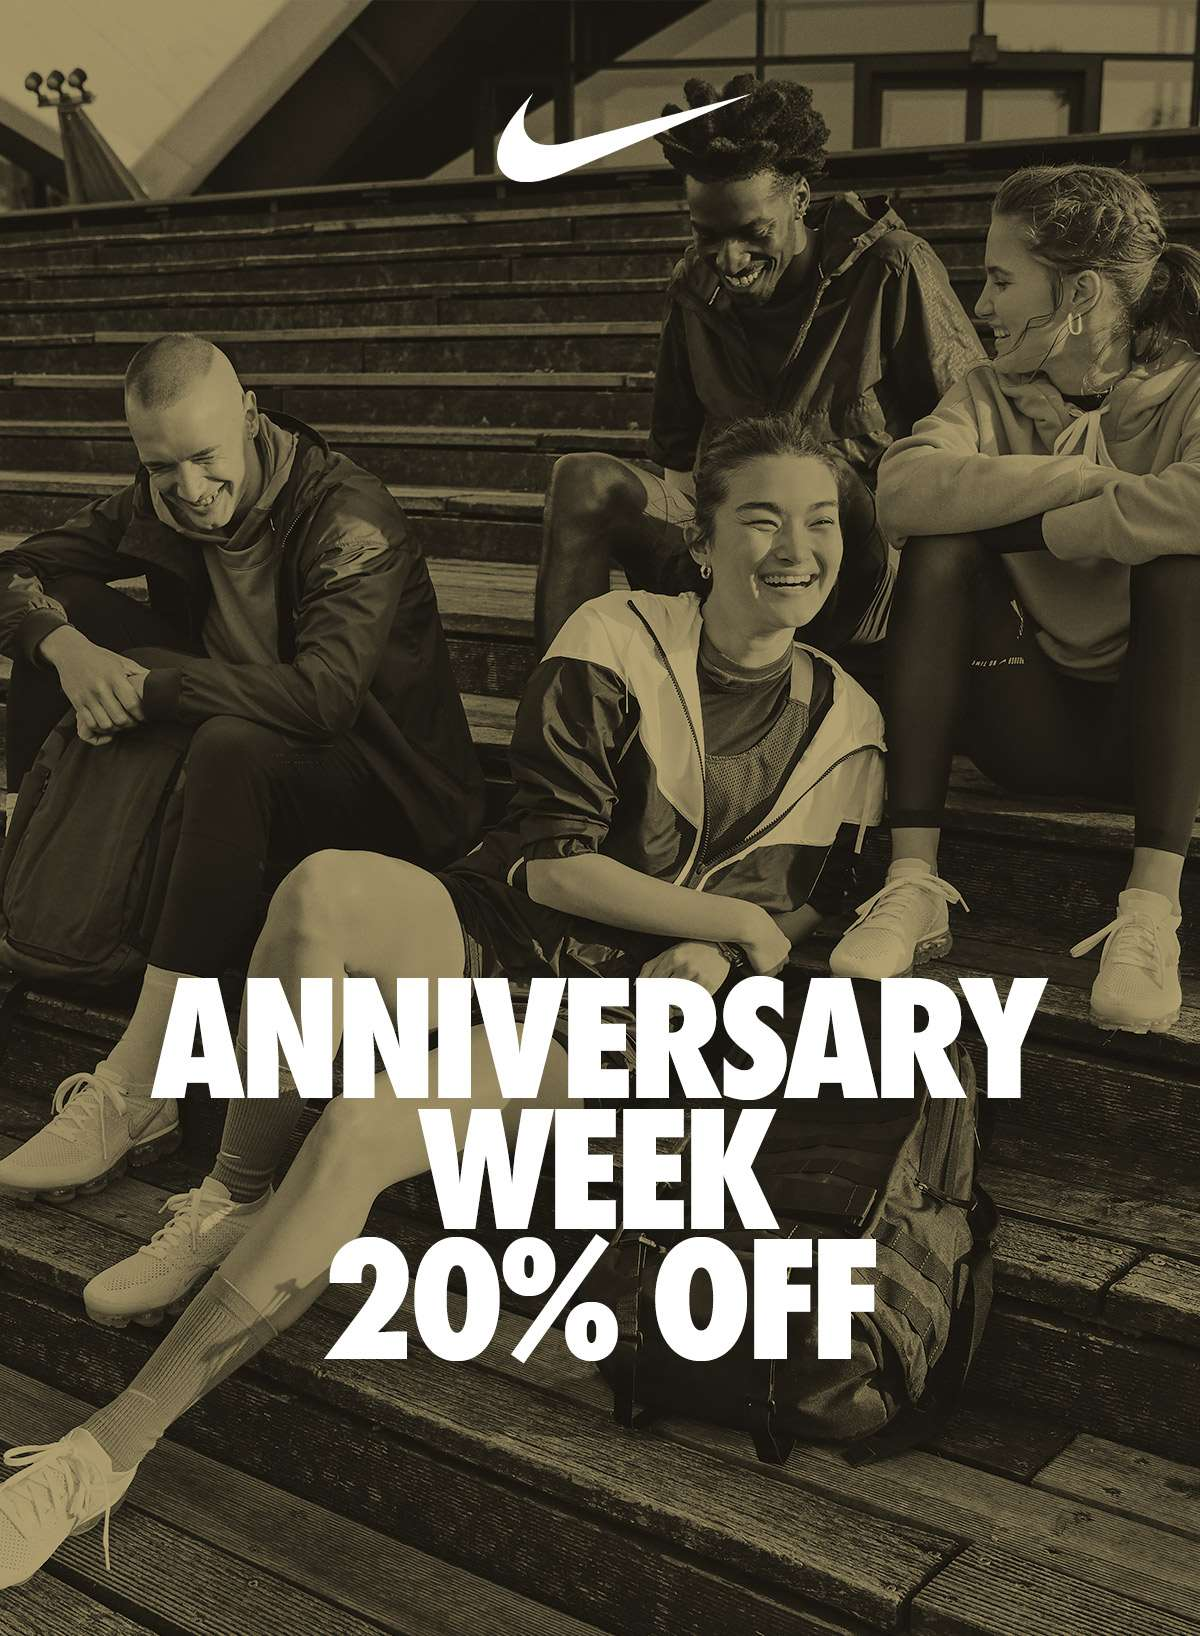 ANNIVERSARY WEEK 20% OFF